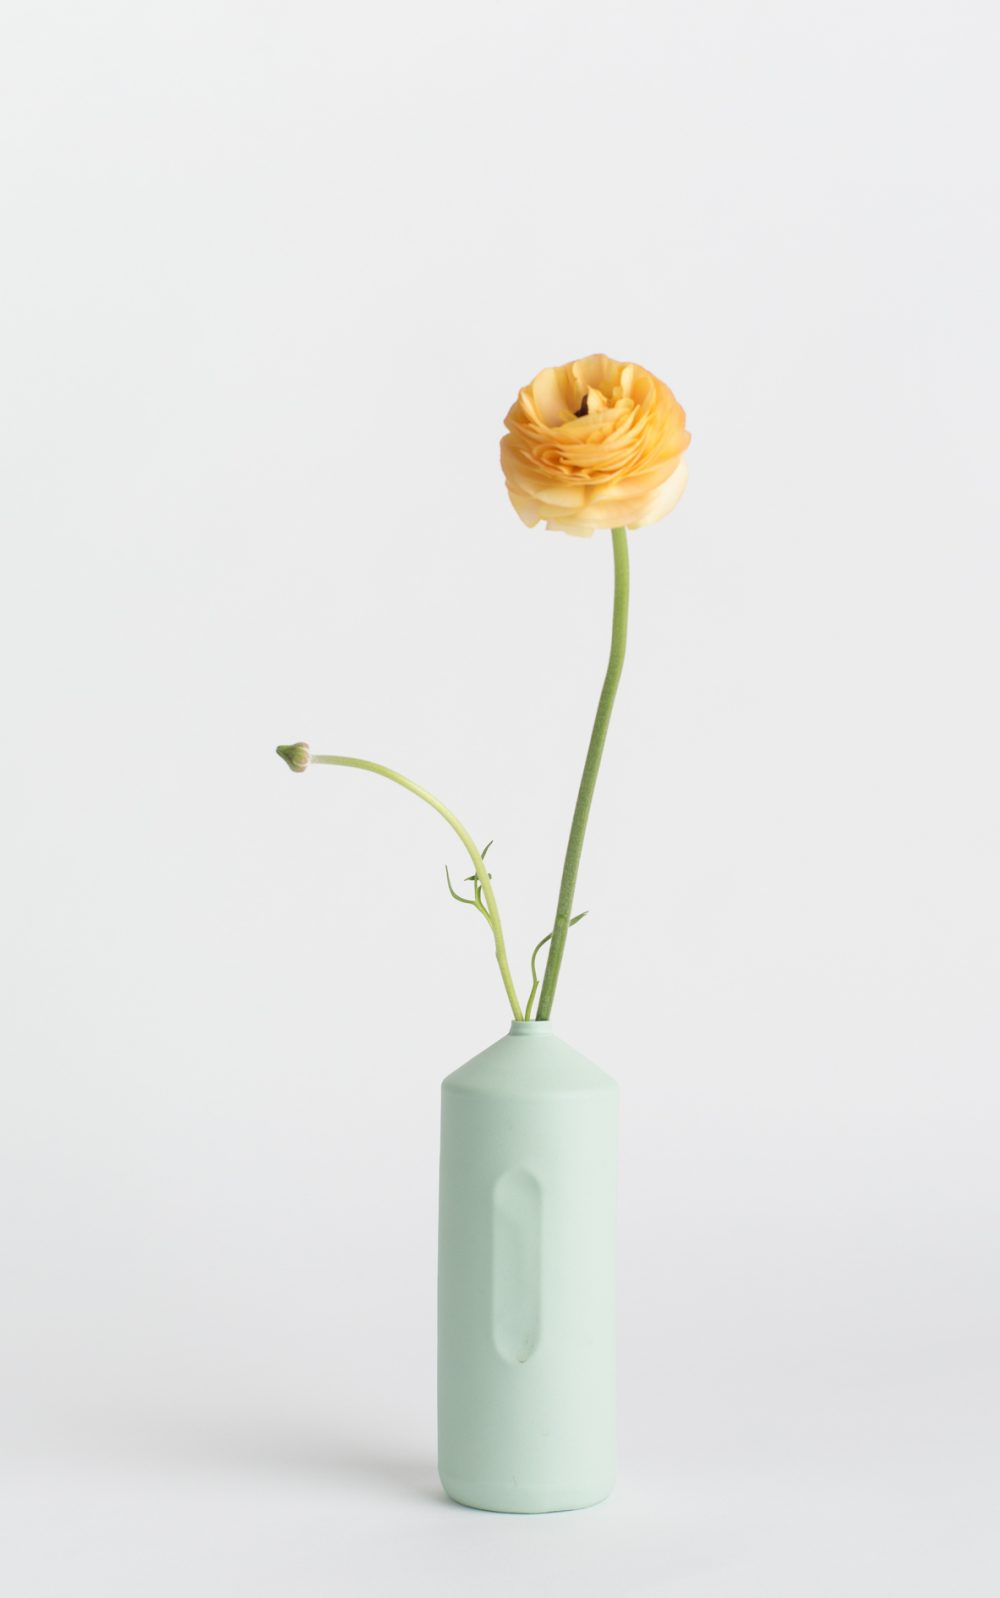 bottle vase #2 mint with yellow flower